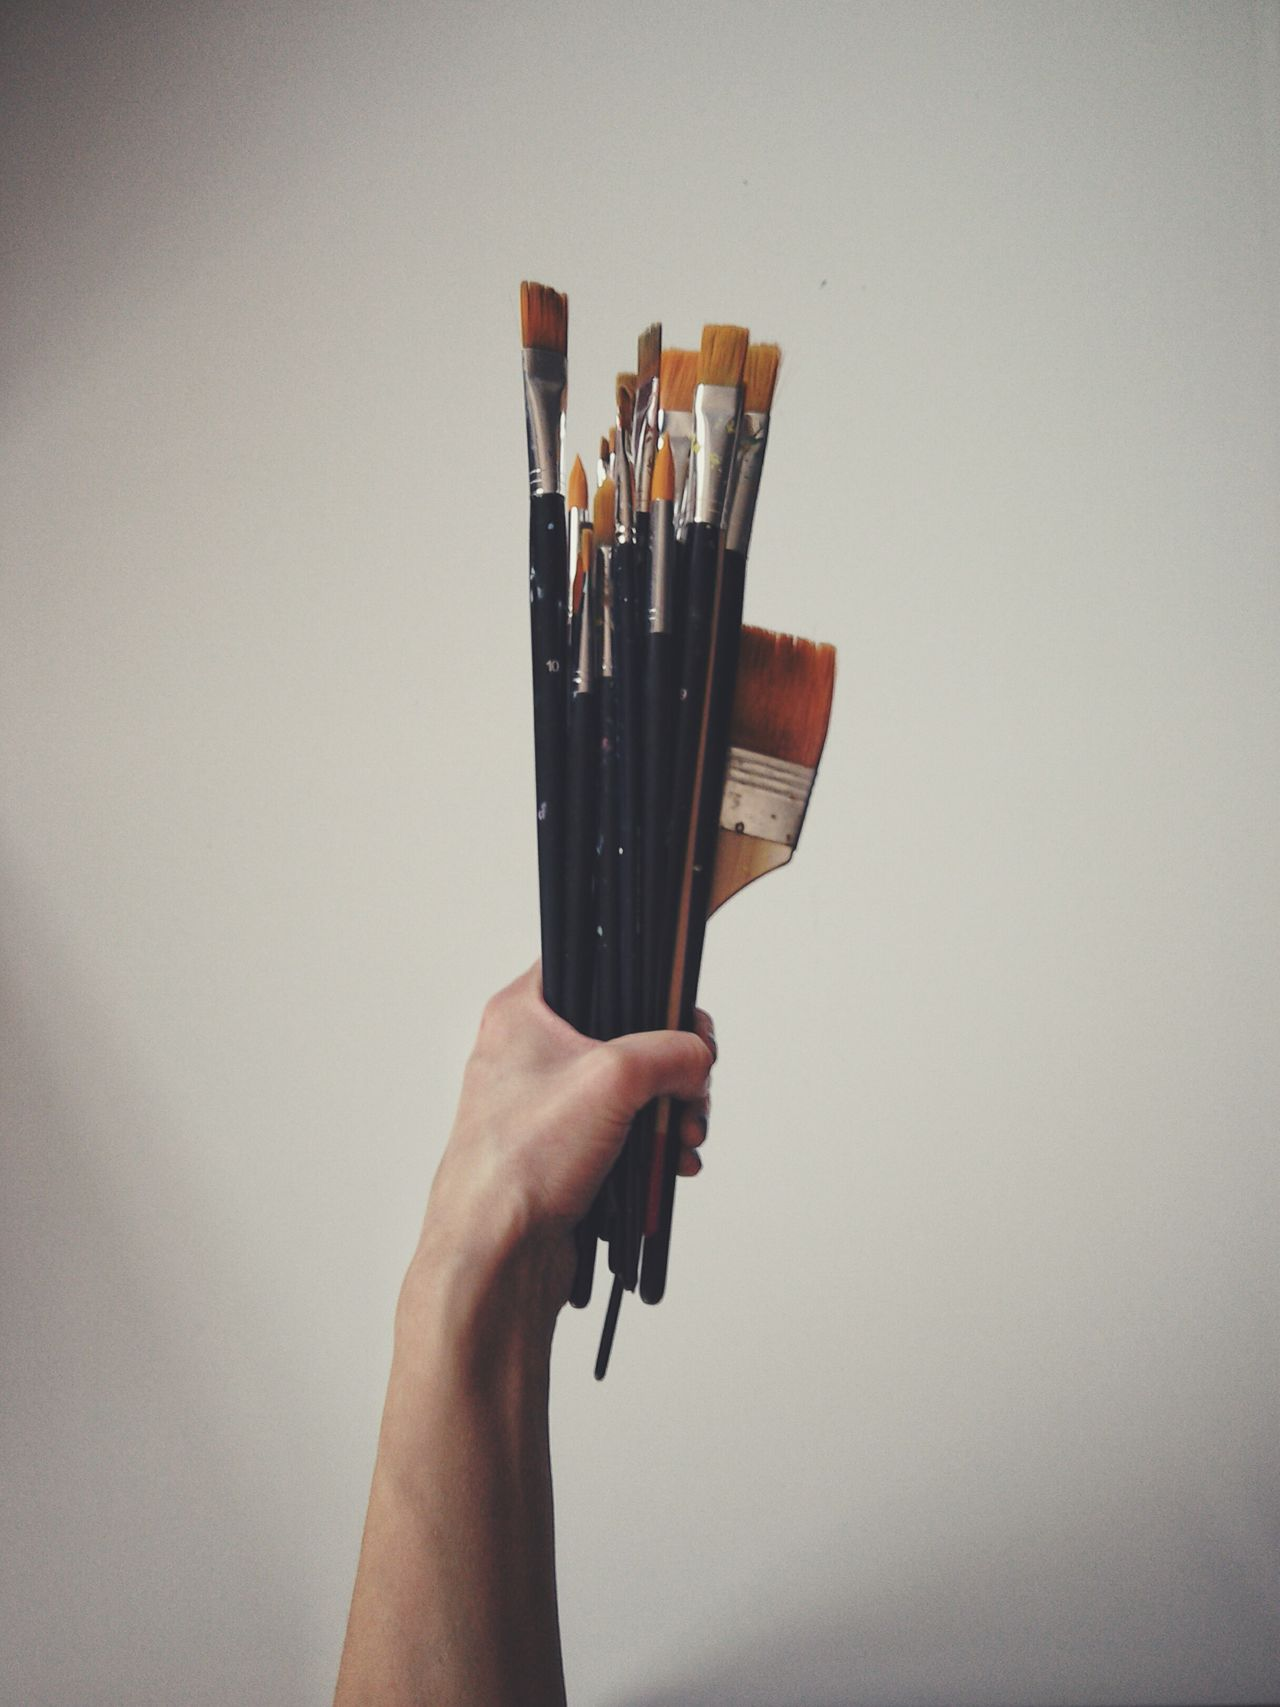 Paintbrushes Studio Shot White Background White Canvas Painting Tools Hobby Variety Large Group Of Objects Human Hand Holding Human Body Part One Person Indoors  Woman Hand Fine Arts Working Tools My Work Paintbrush